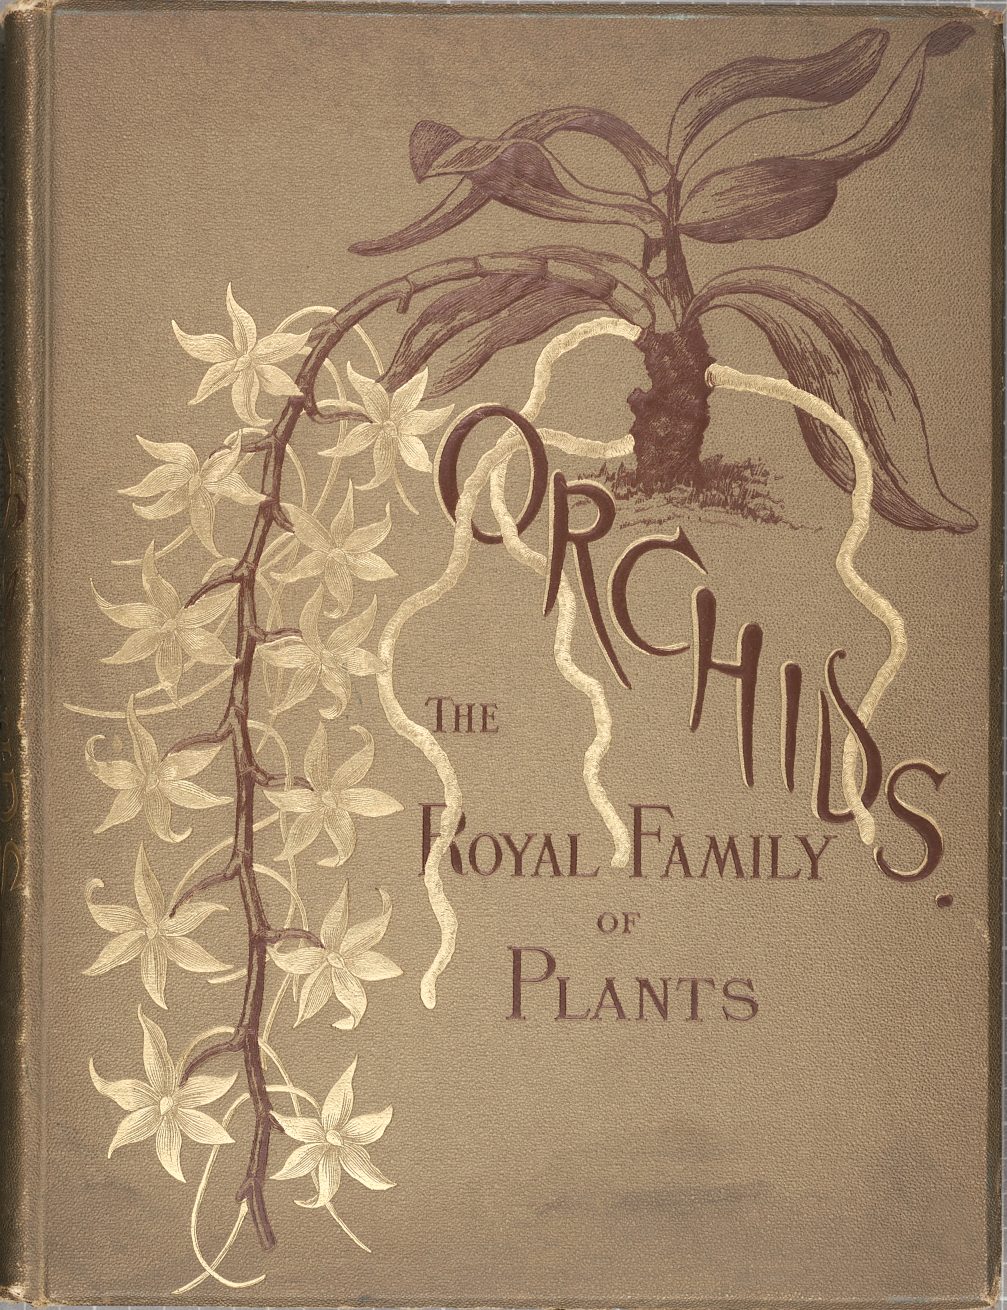 Orchids-Royal Family of Plants-Harriet